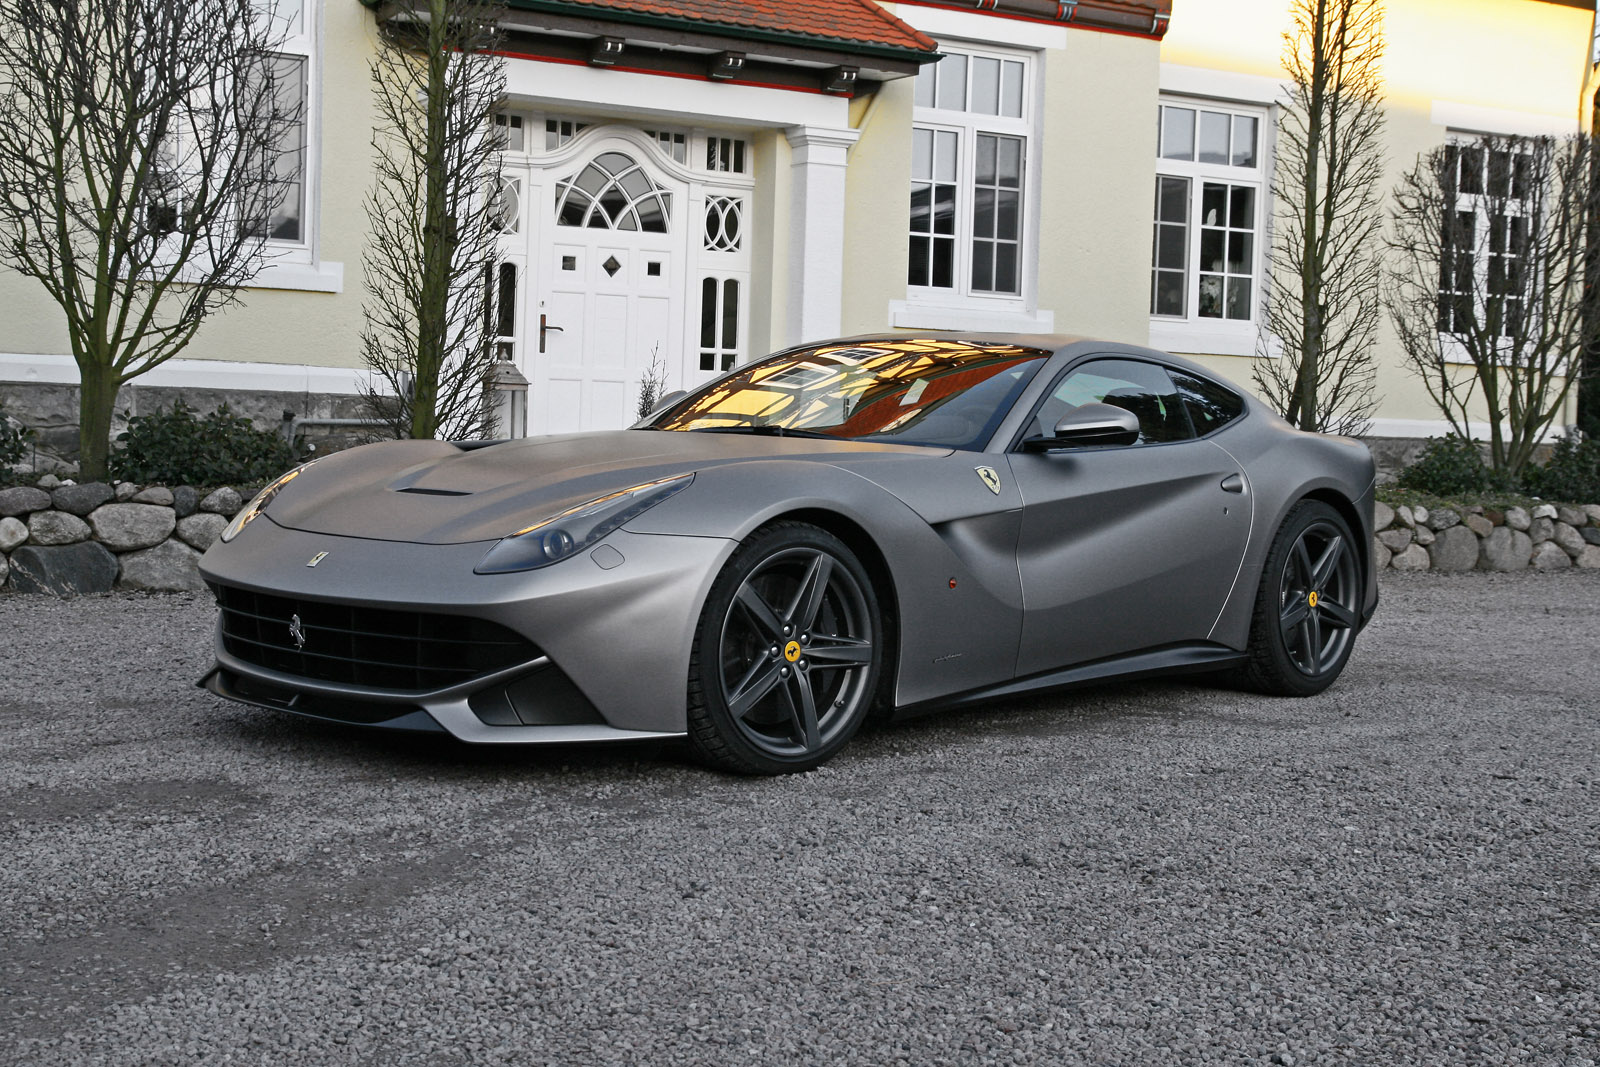 cam shaft ferrari f12 berlinetta top speed 340 km h. Black Bedroom Furniture Sets. Home Design Ideas